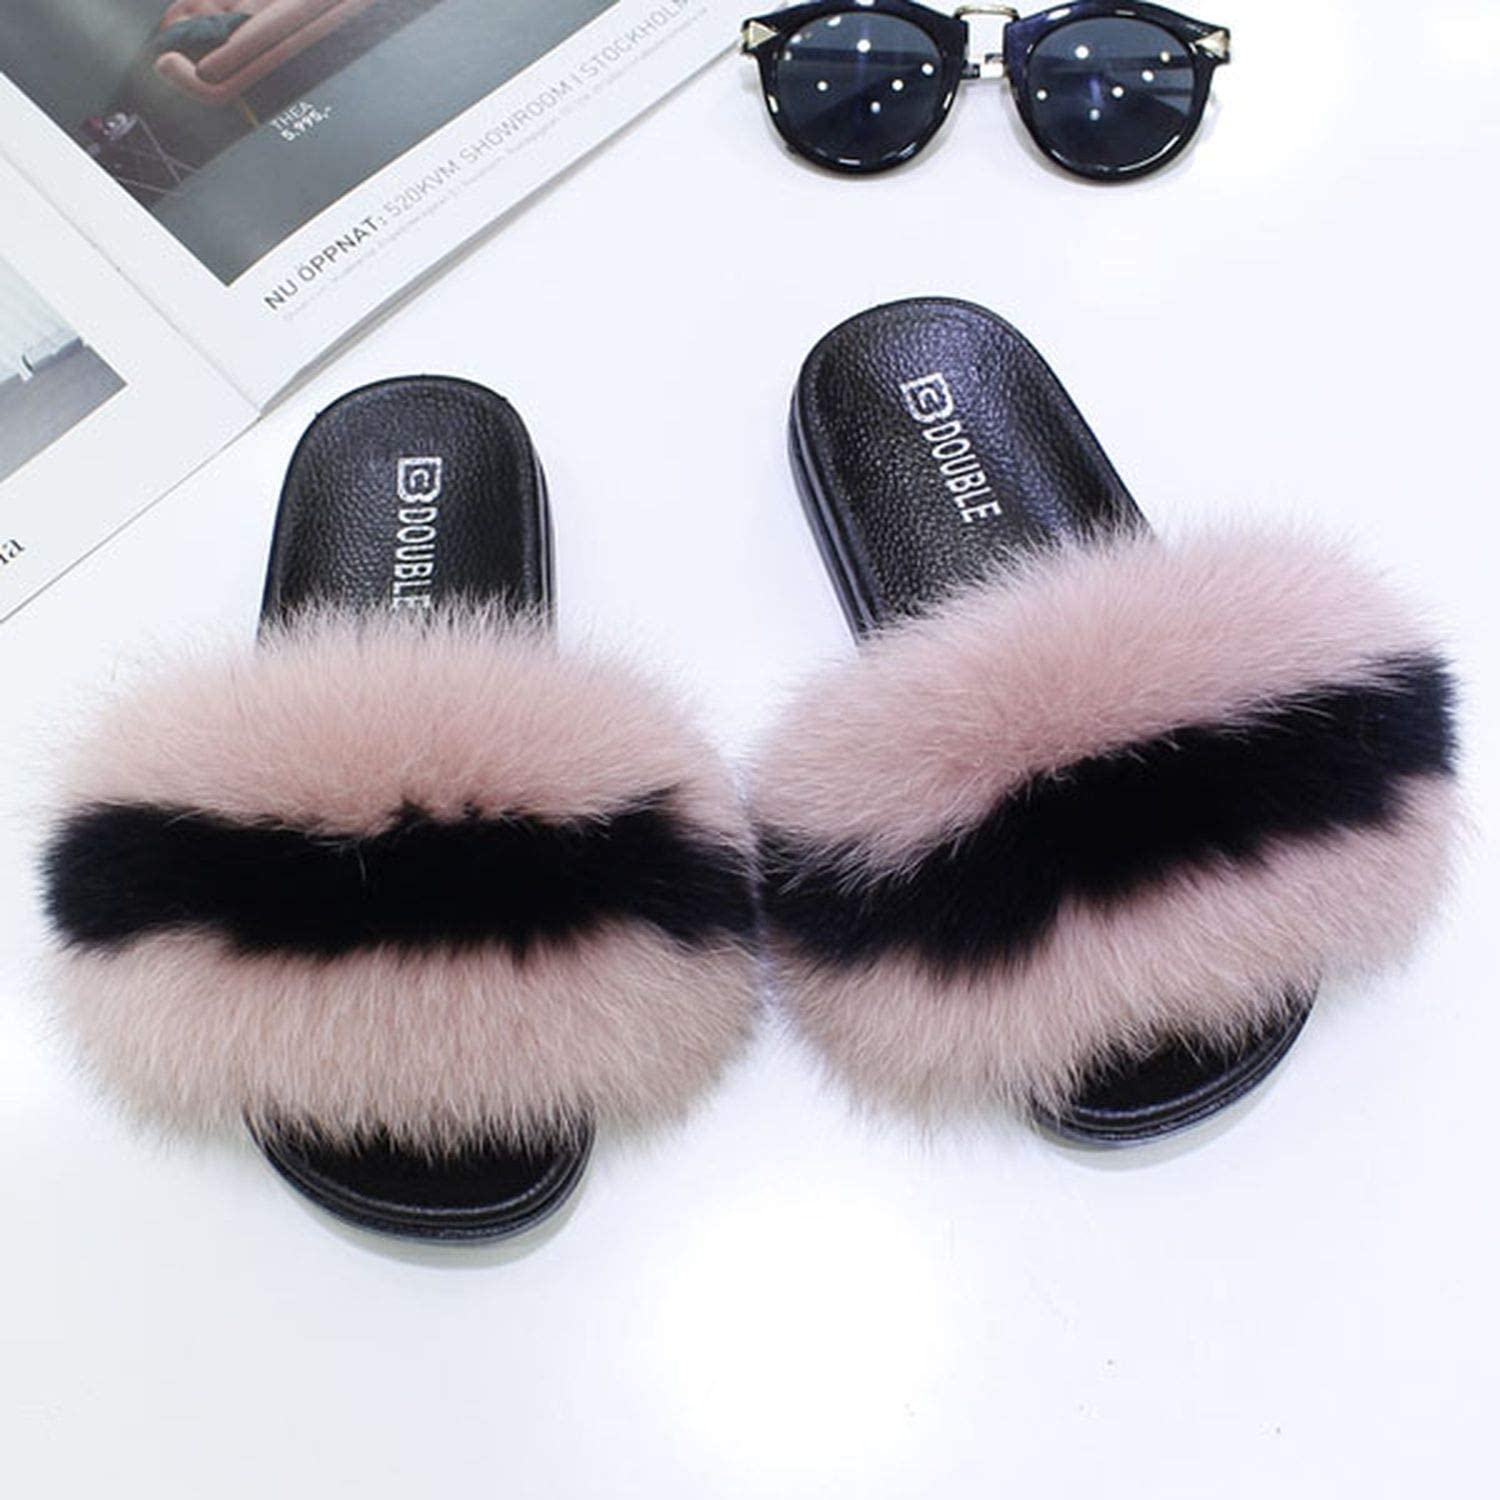 High end 2018 Brand Women Fur Slippers Fluffy Real Fox Hair Slides Flat Soft Indoor Flip Flops Ladies Plush shoes Woman Sandals S300